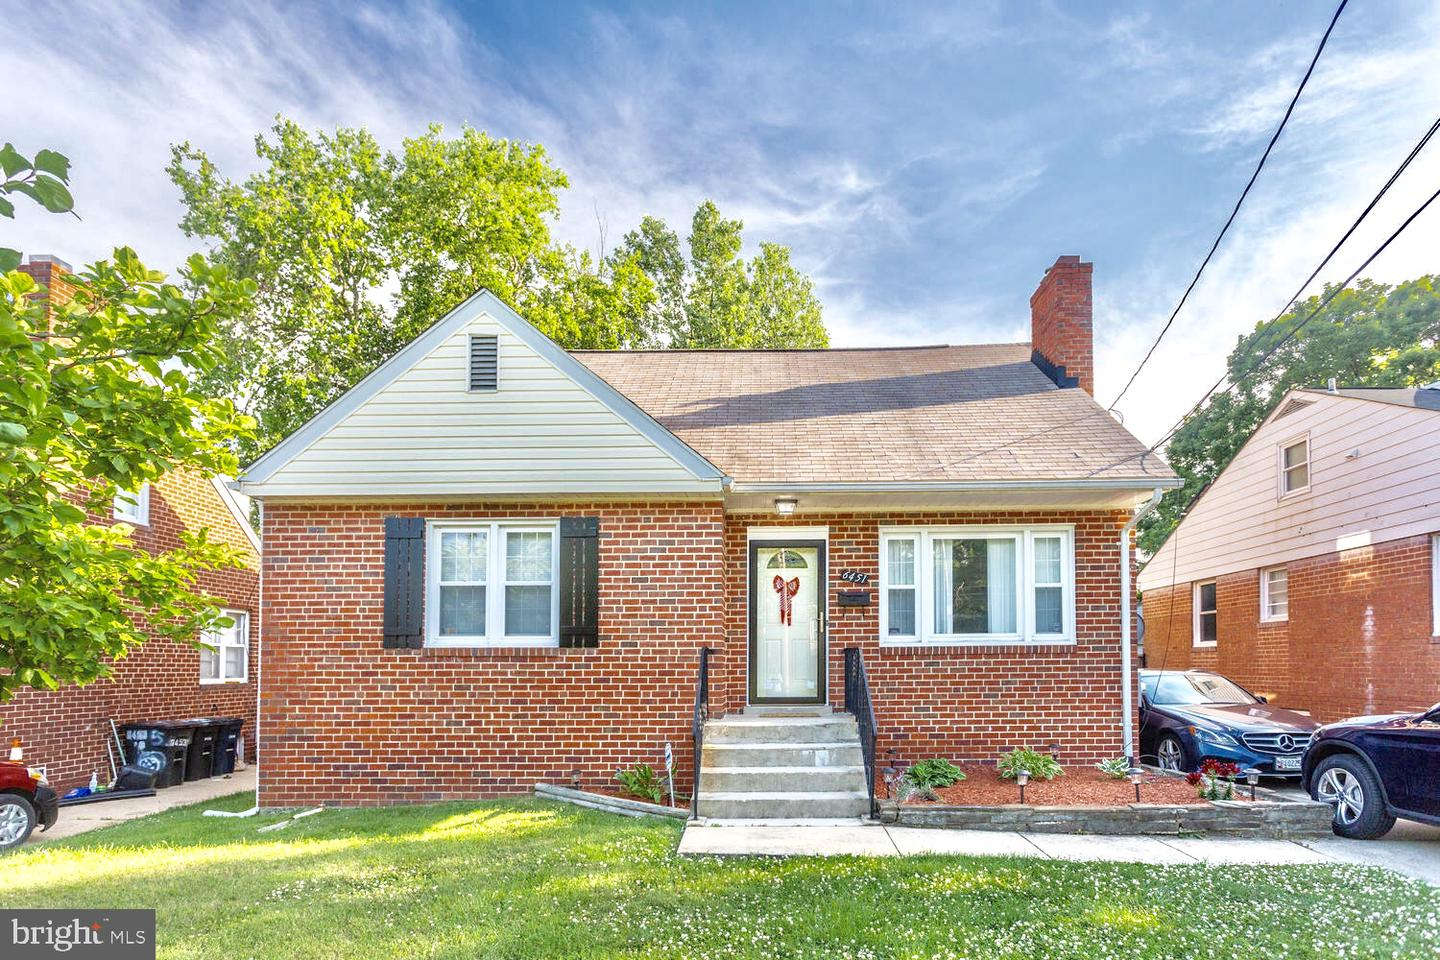 6451 OLD LANDOVER ROAD, HYATTSVILLE, Maryland